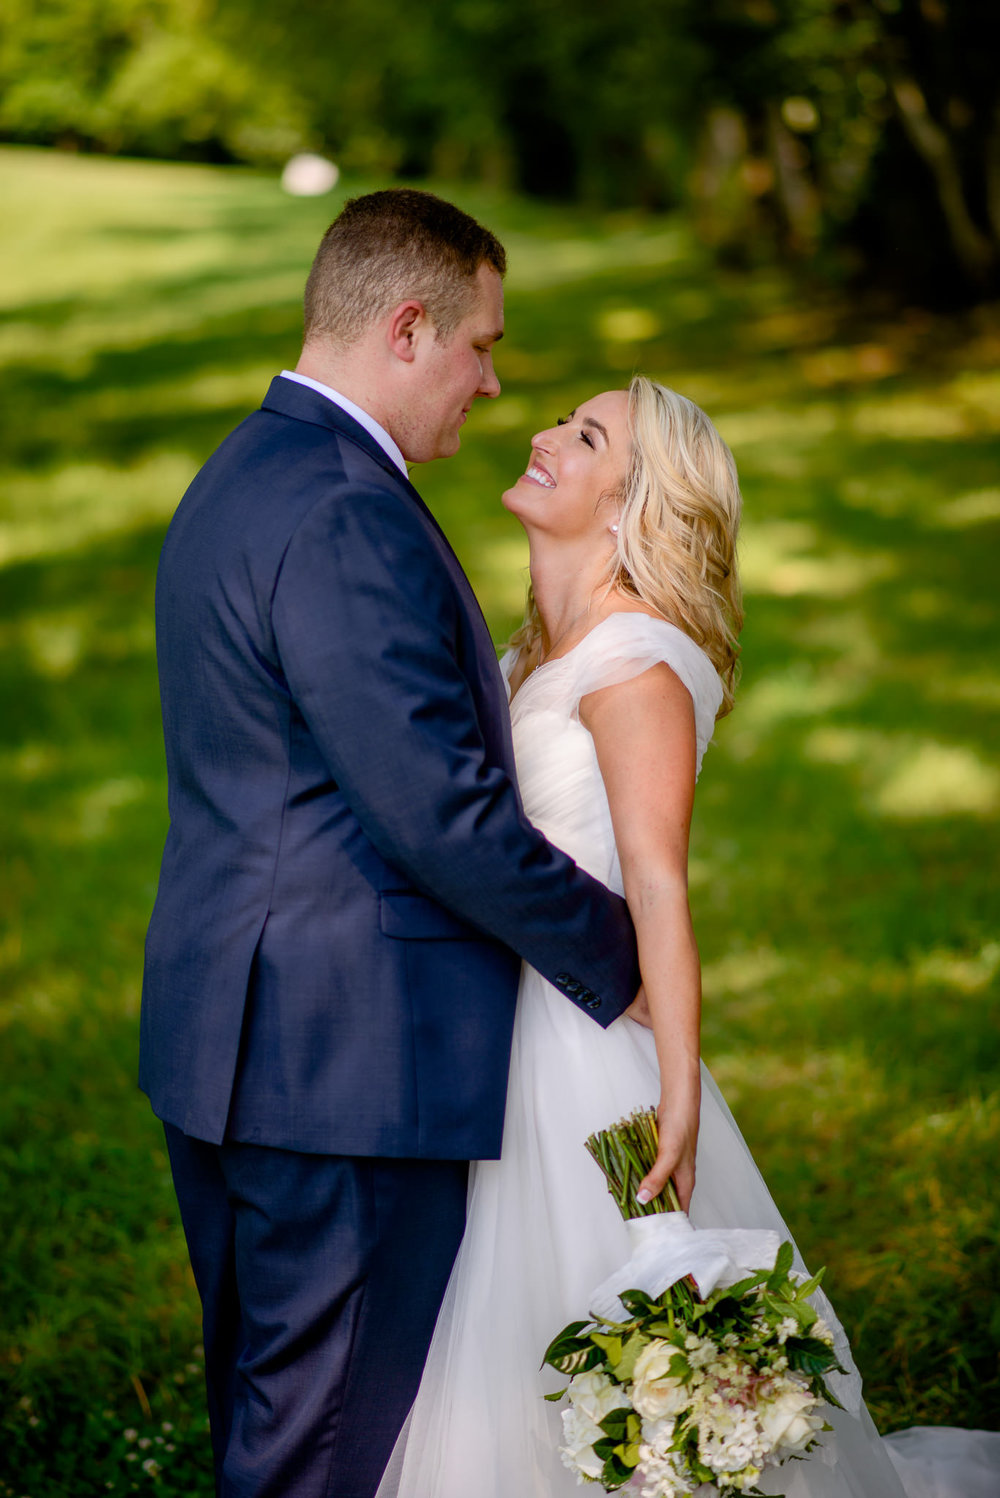 Greg and Jess Photography Nashville Portrait and Wedding Photographer 36.jpg